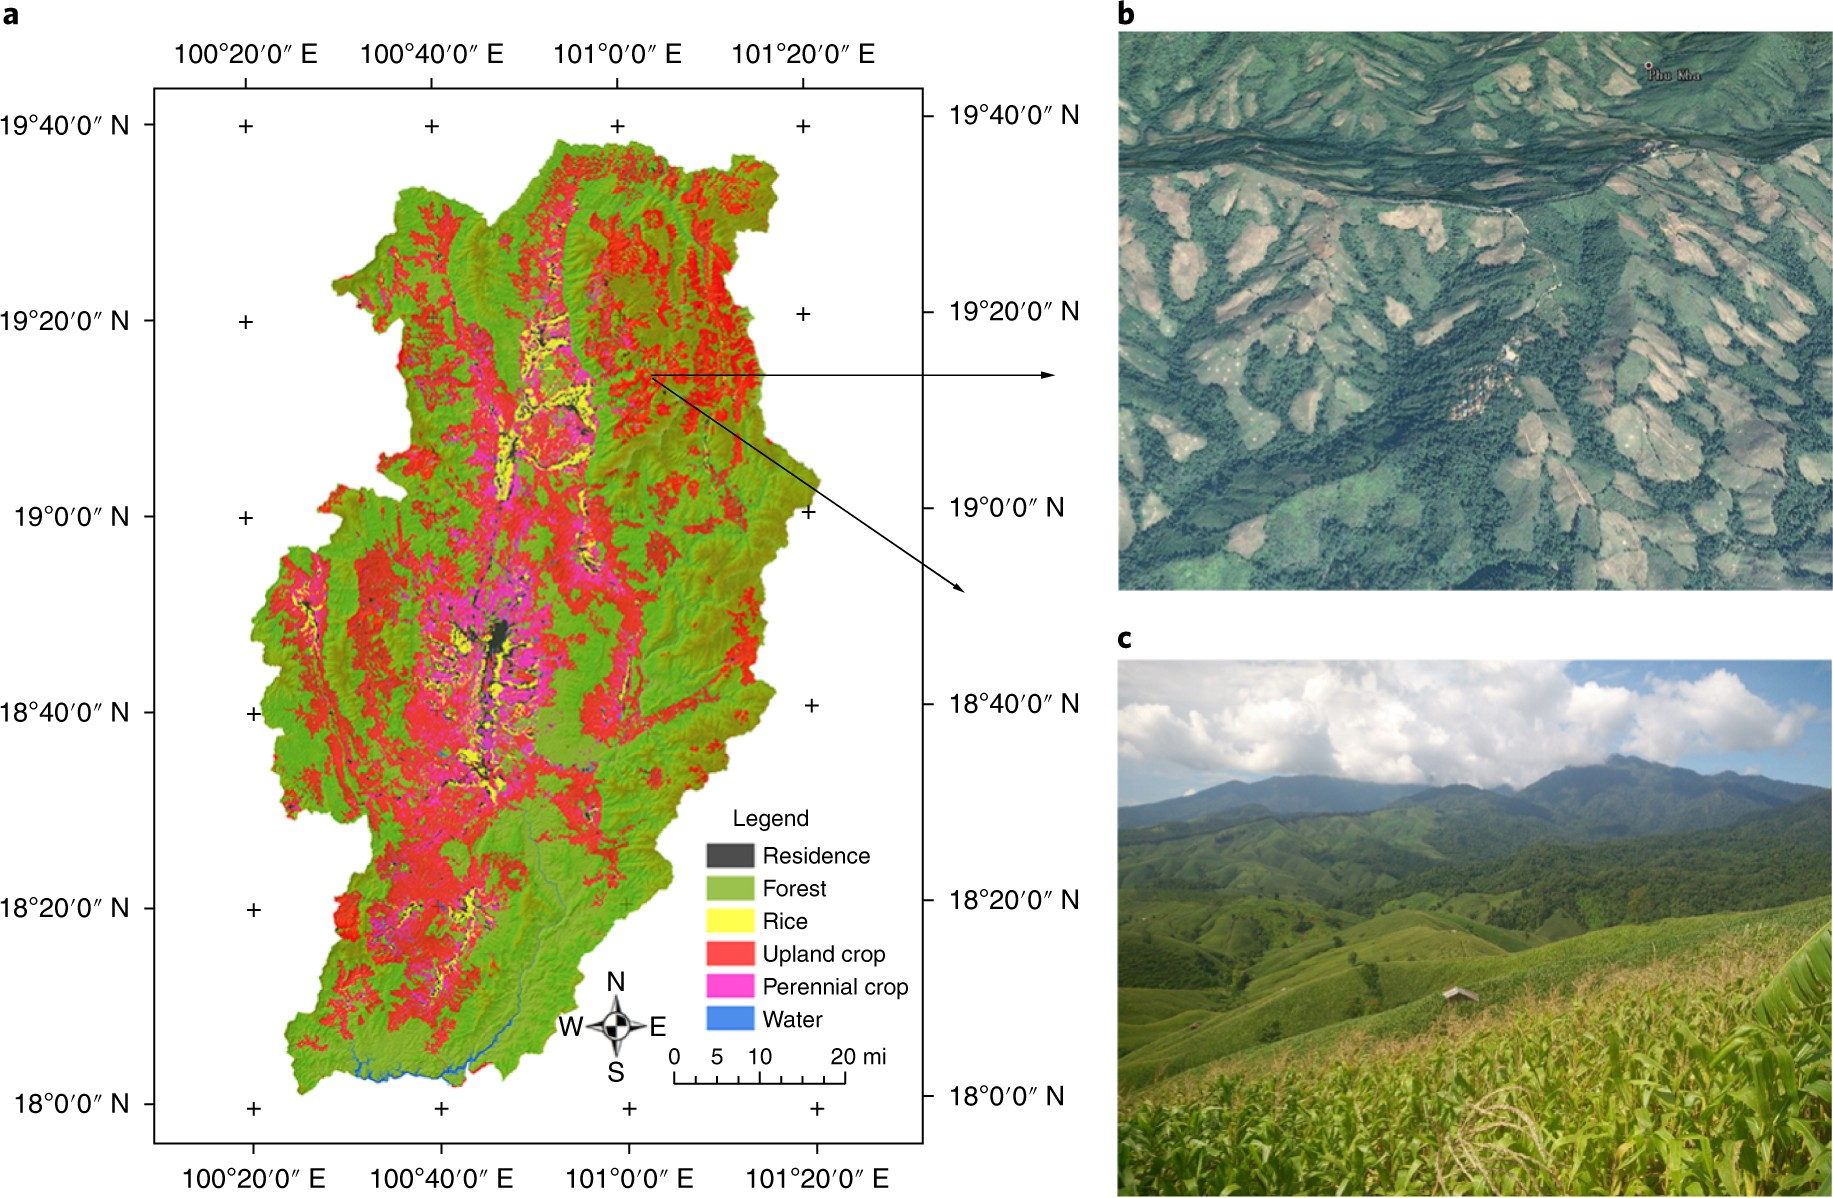 Highland cropland expansion and forest loss in Southeast Asia in the